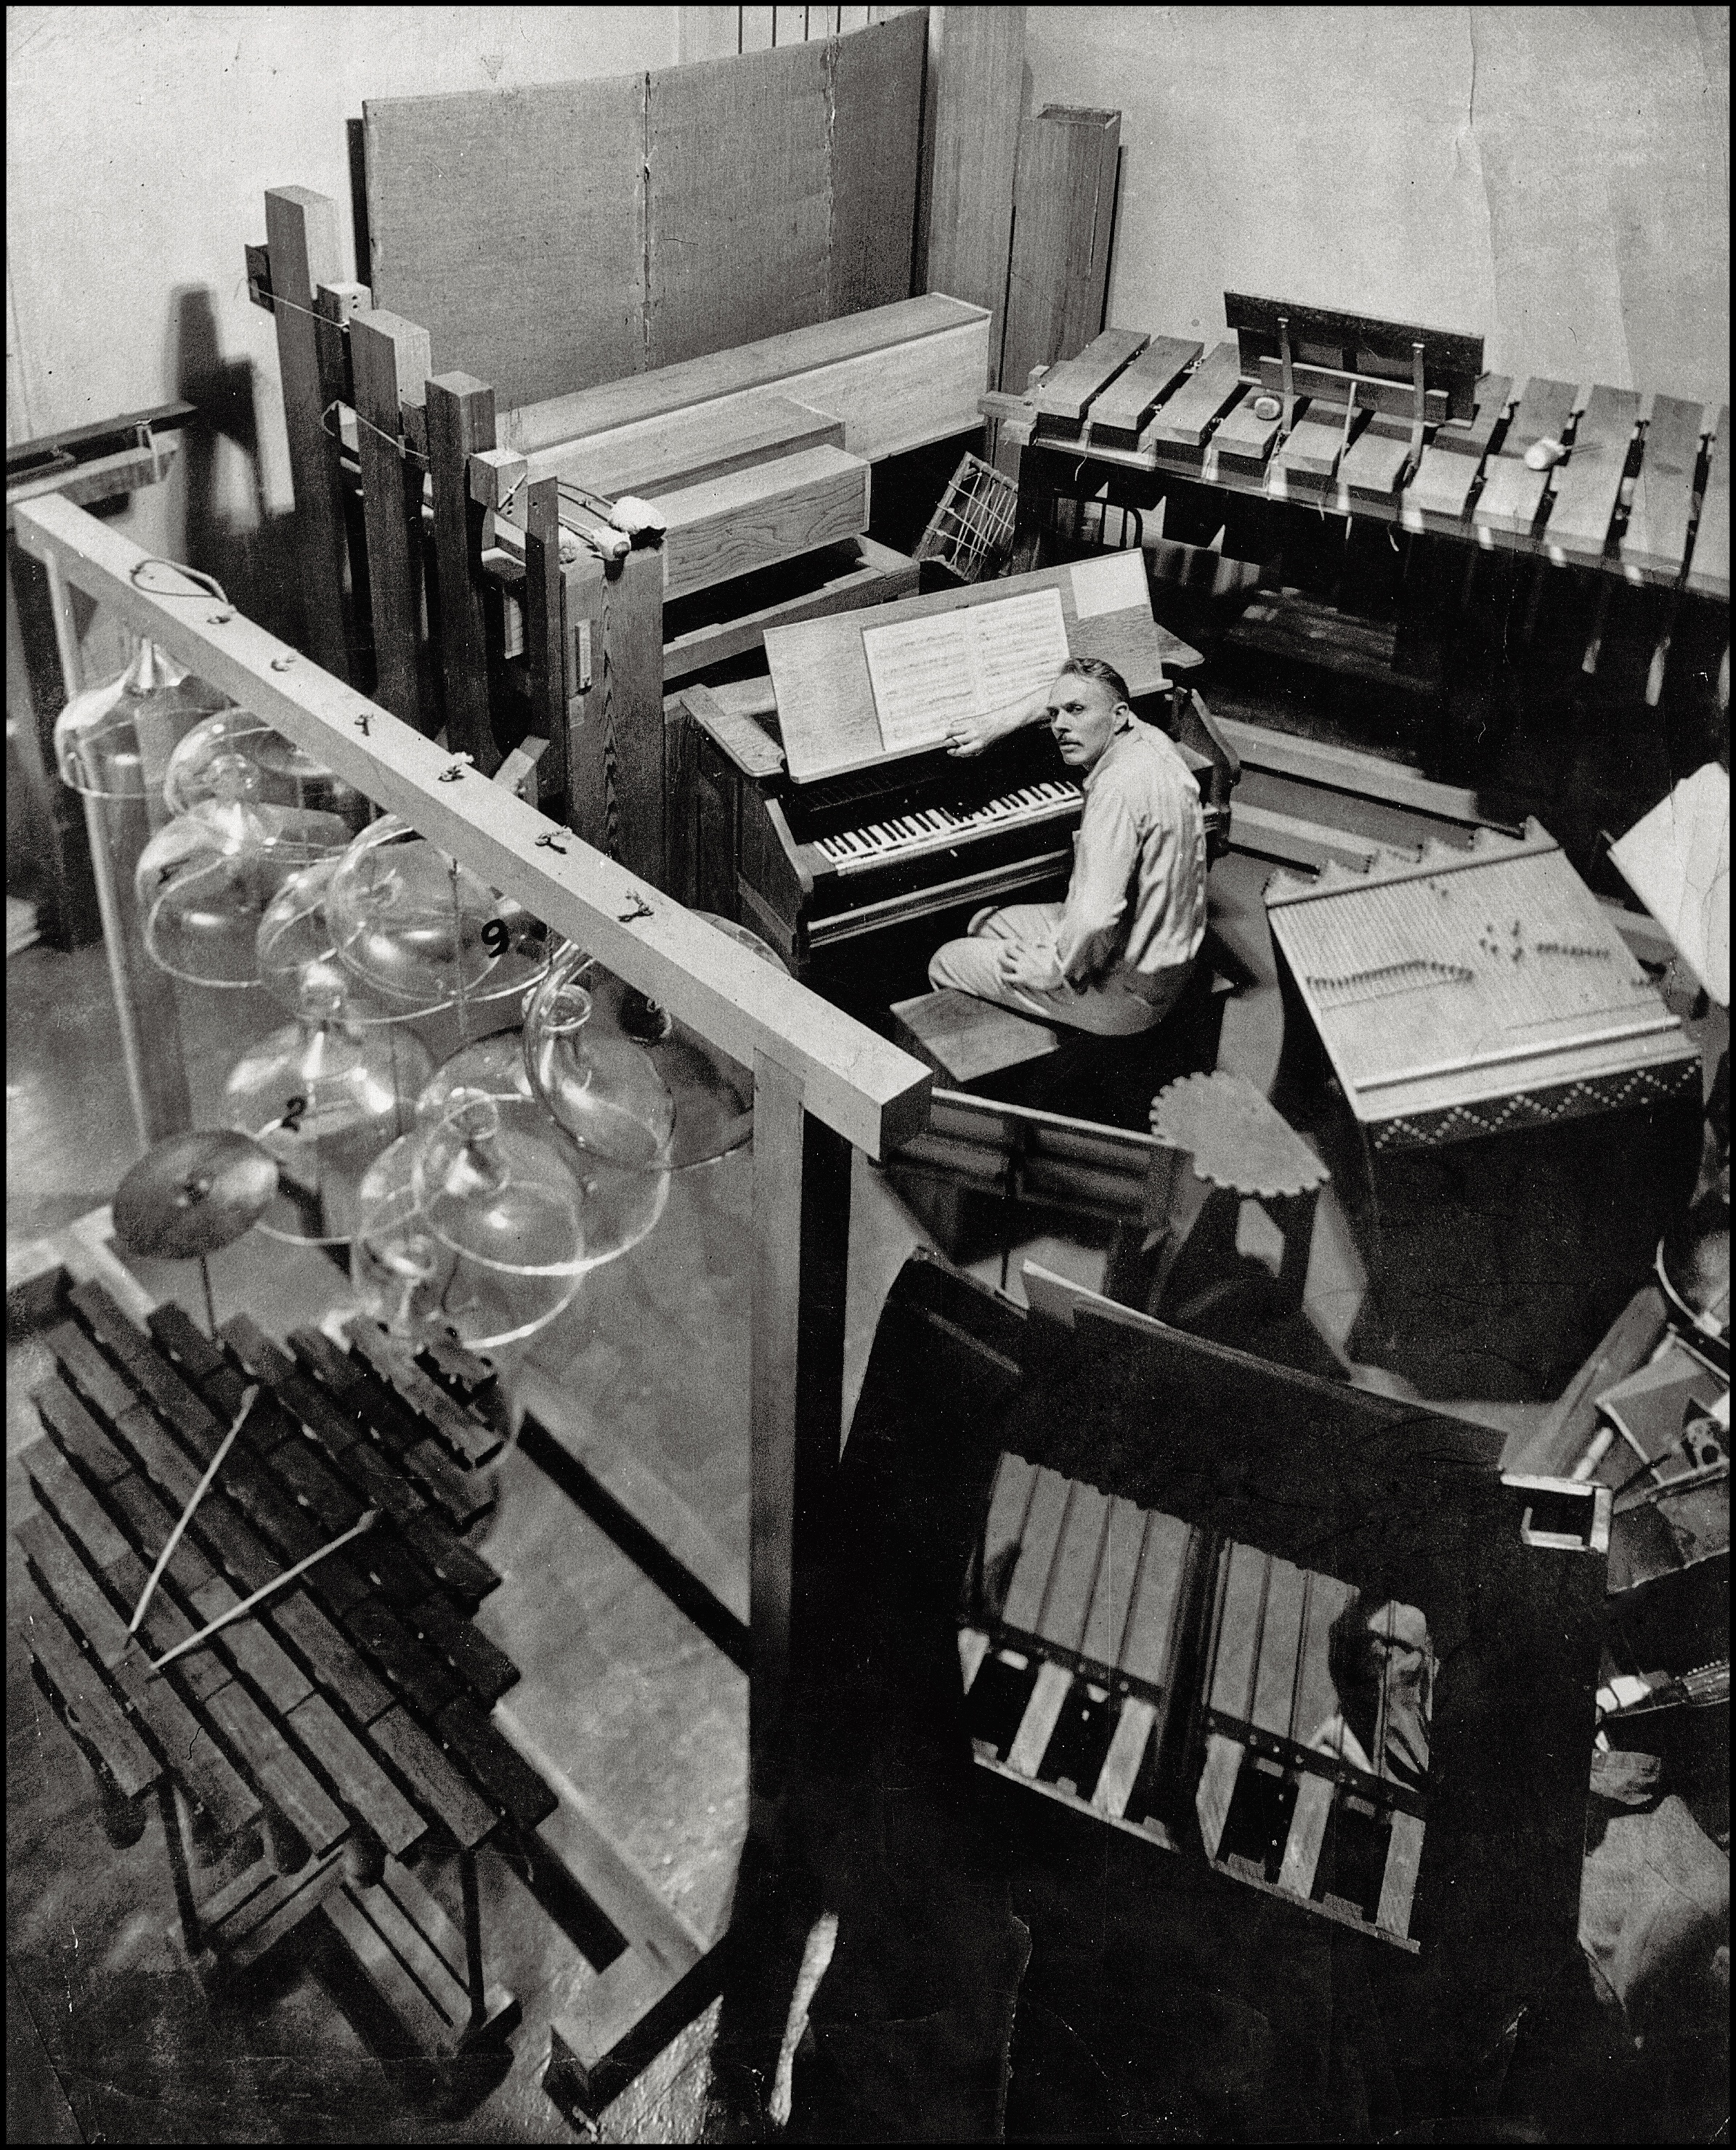 Partch in his studio, surrounded by his many instruments. Mills College, 1952